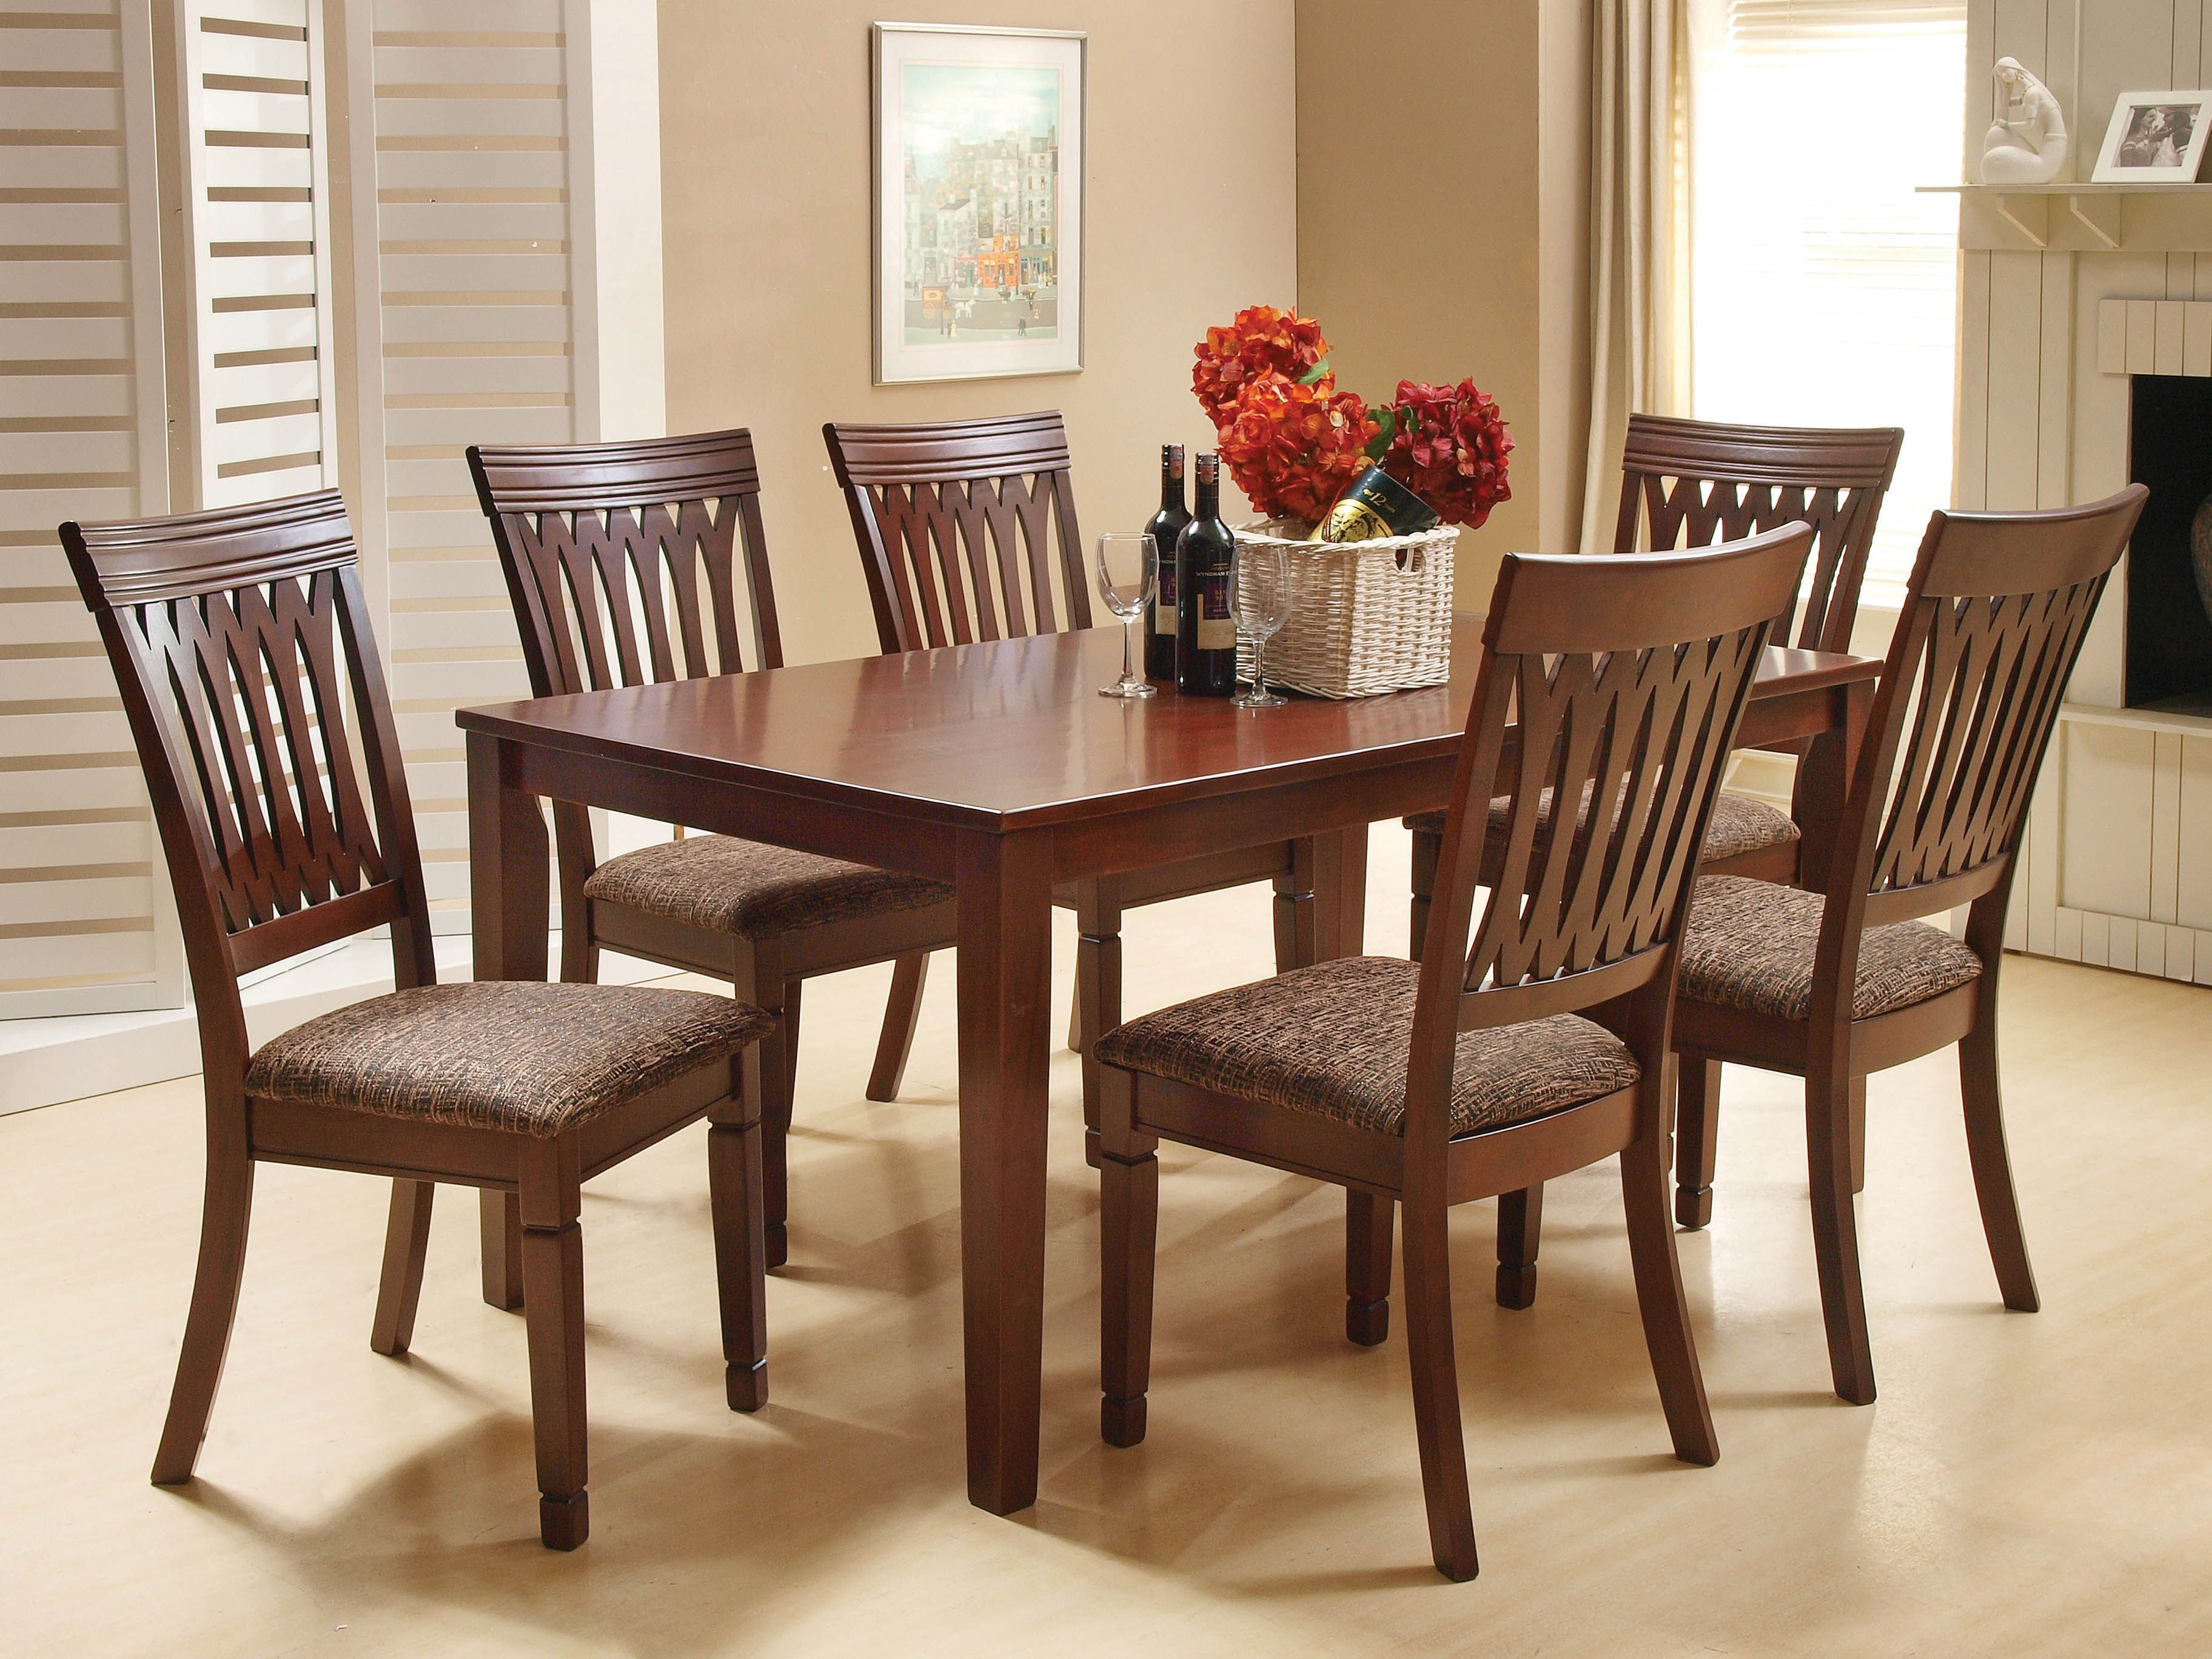 Gilmer Dining Set  The More The Merrier With The Sturdy And Amazing Cheap Dining Room Chairs Set Of 6 2018